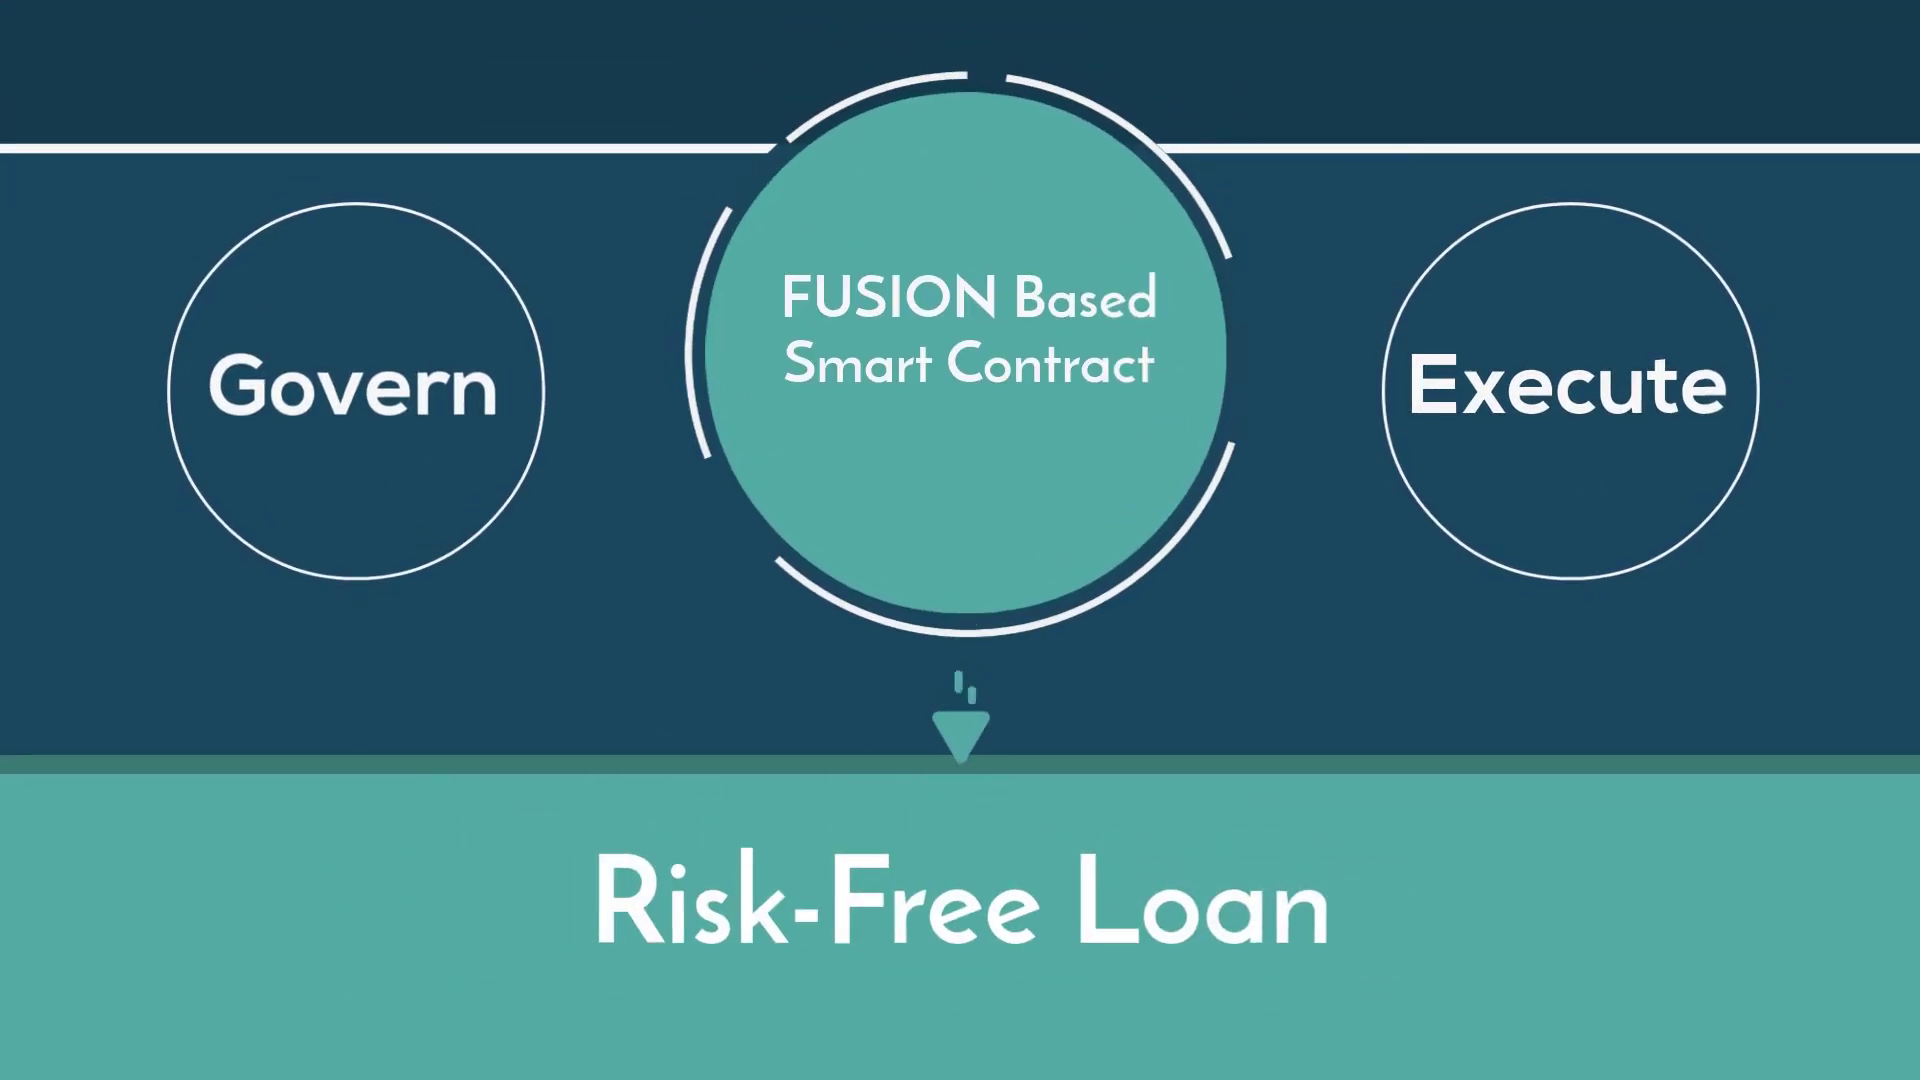 Risk-free token loan